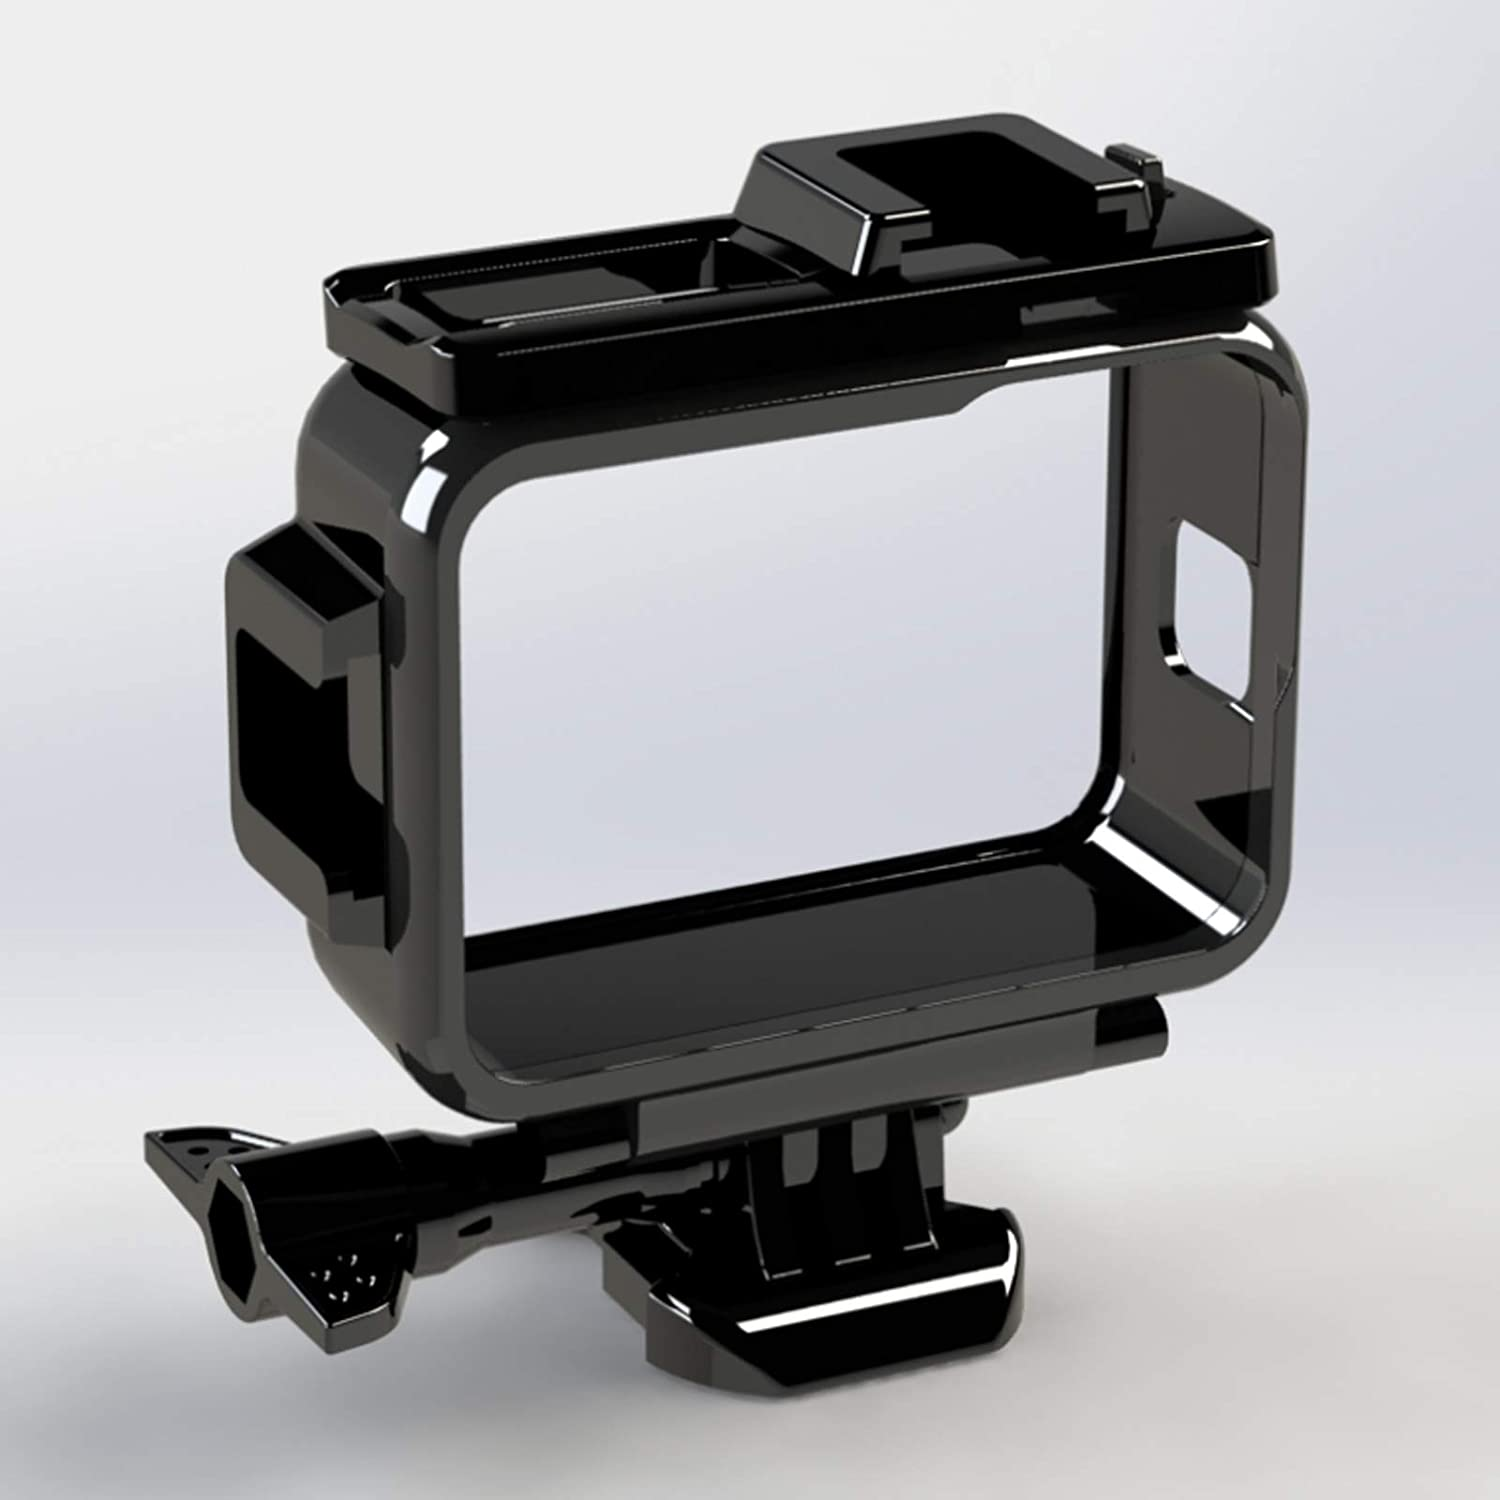 Case for GoPro Hero 9 Frame Housing with Cold Shoe Mount, Protective Shell Cage Mount Accessories for Go Pro Hero 9 Action Cameras (Black)